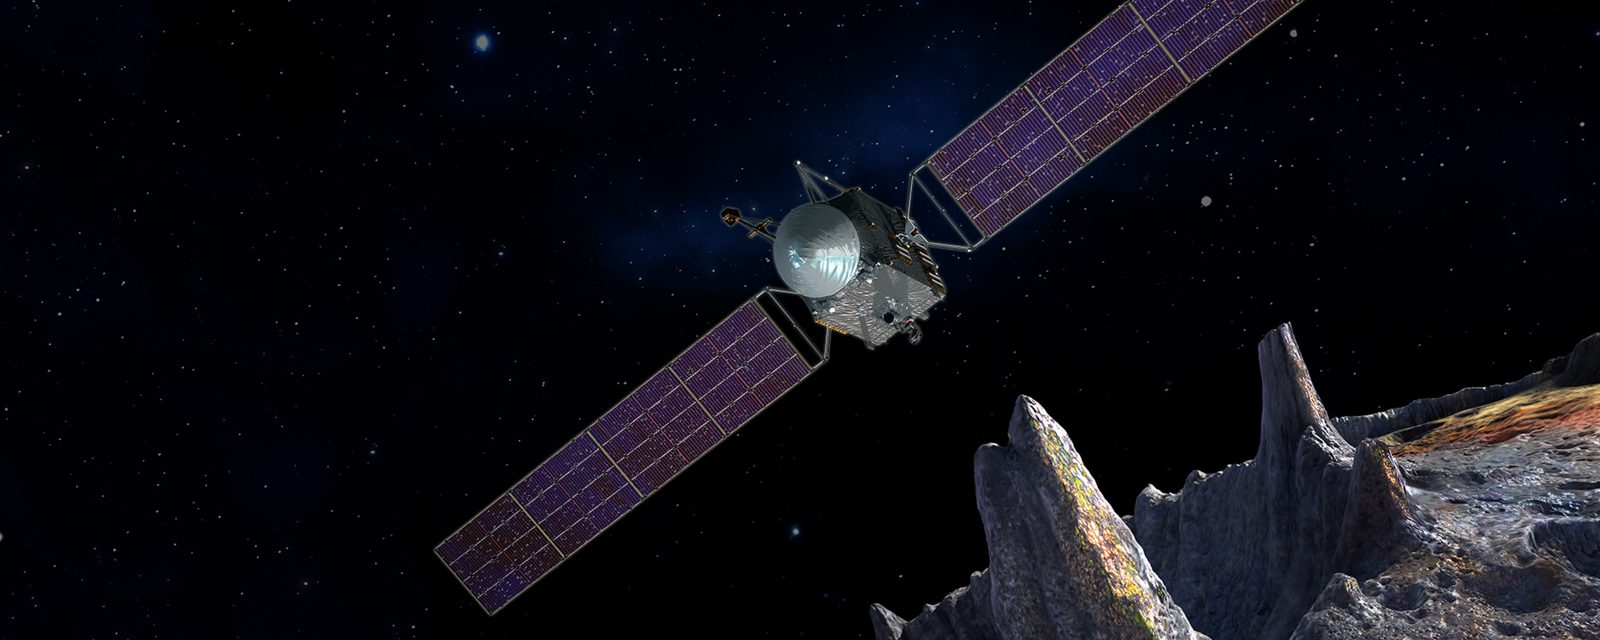 Psyche spacecraft at an asteroid